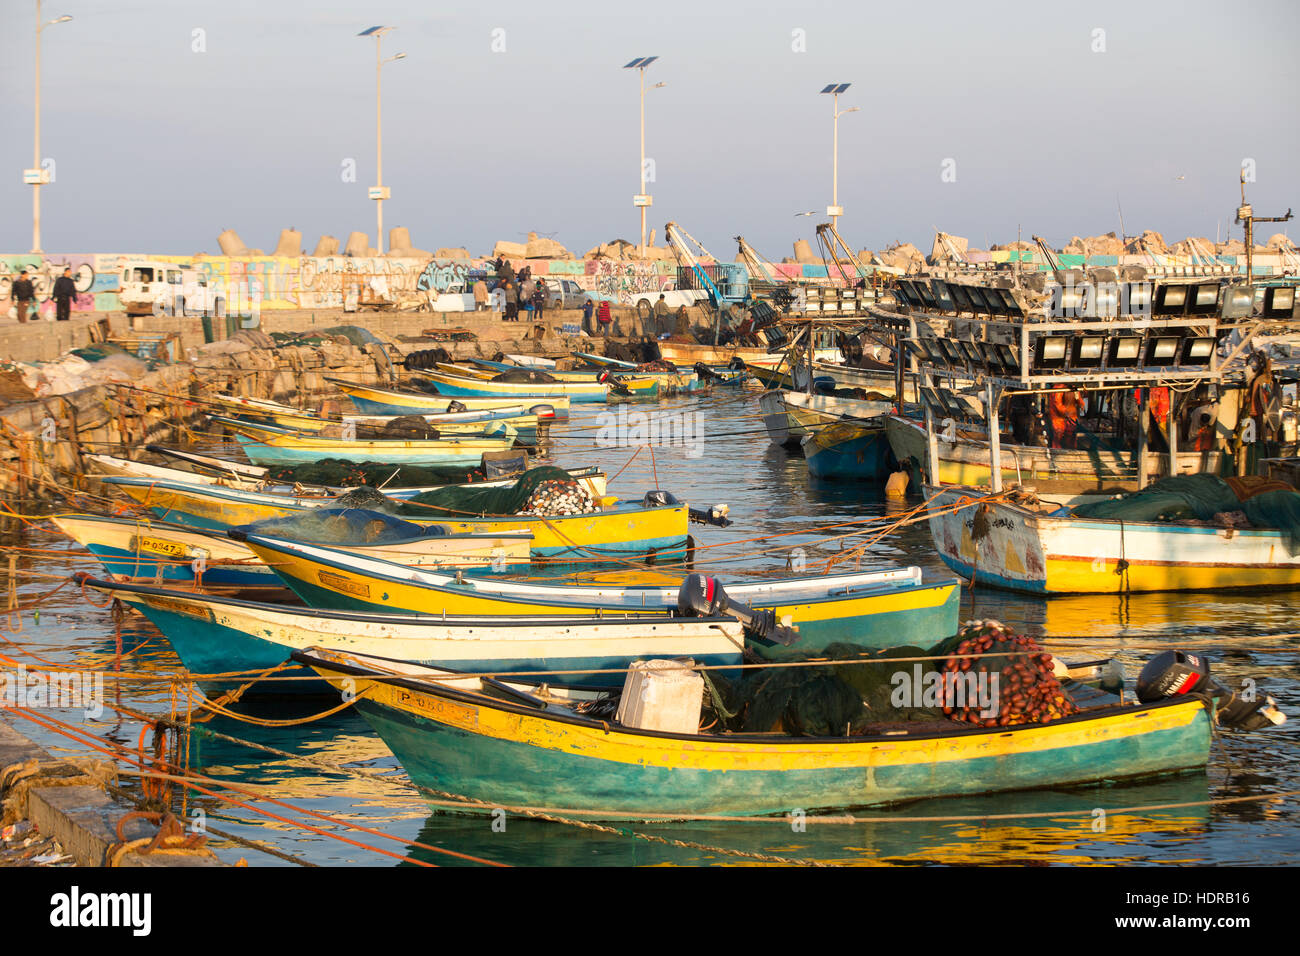 Fishing boats in the port at Gaza city - Stock Image